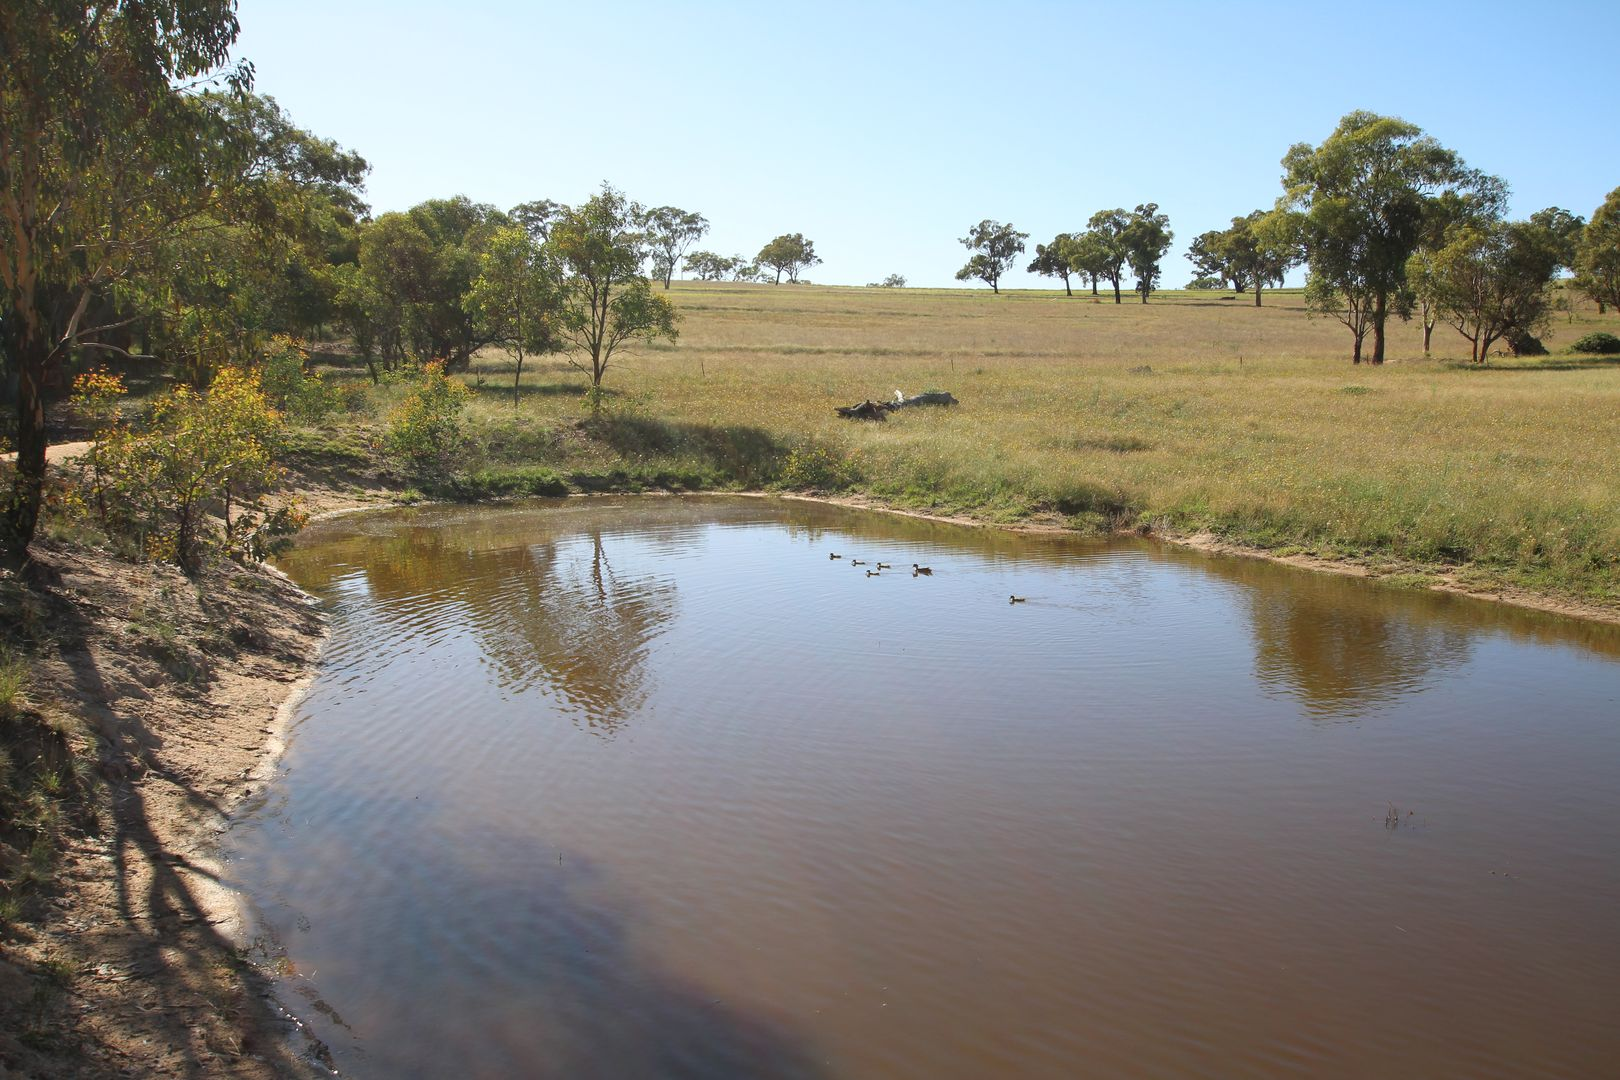 Lot 125, 1488 Mutton Falls Road, O'Connell NSW 2795, Image 0